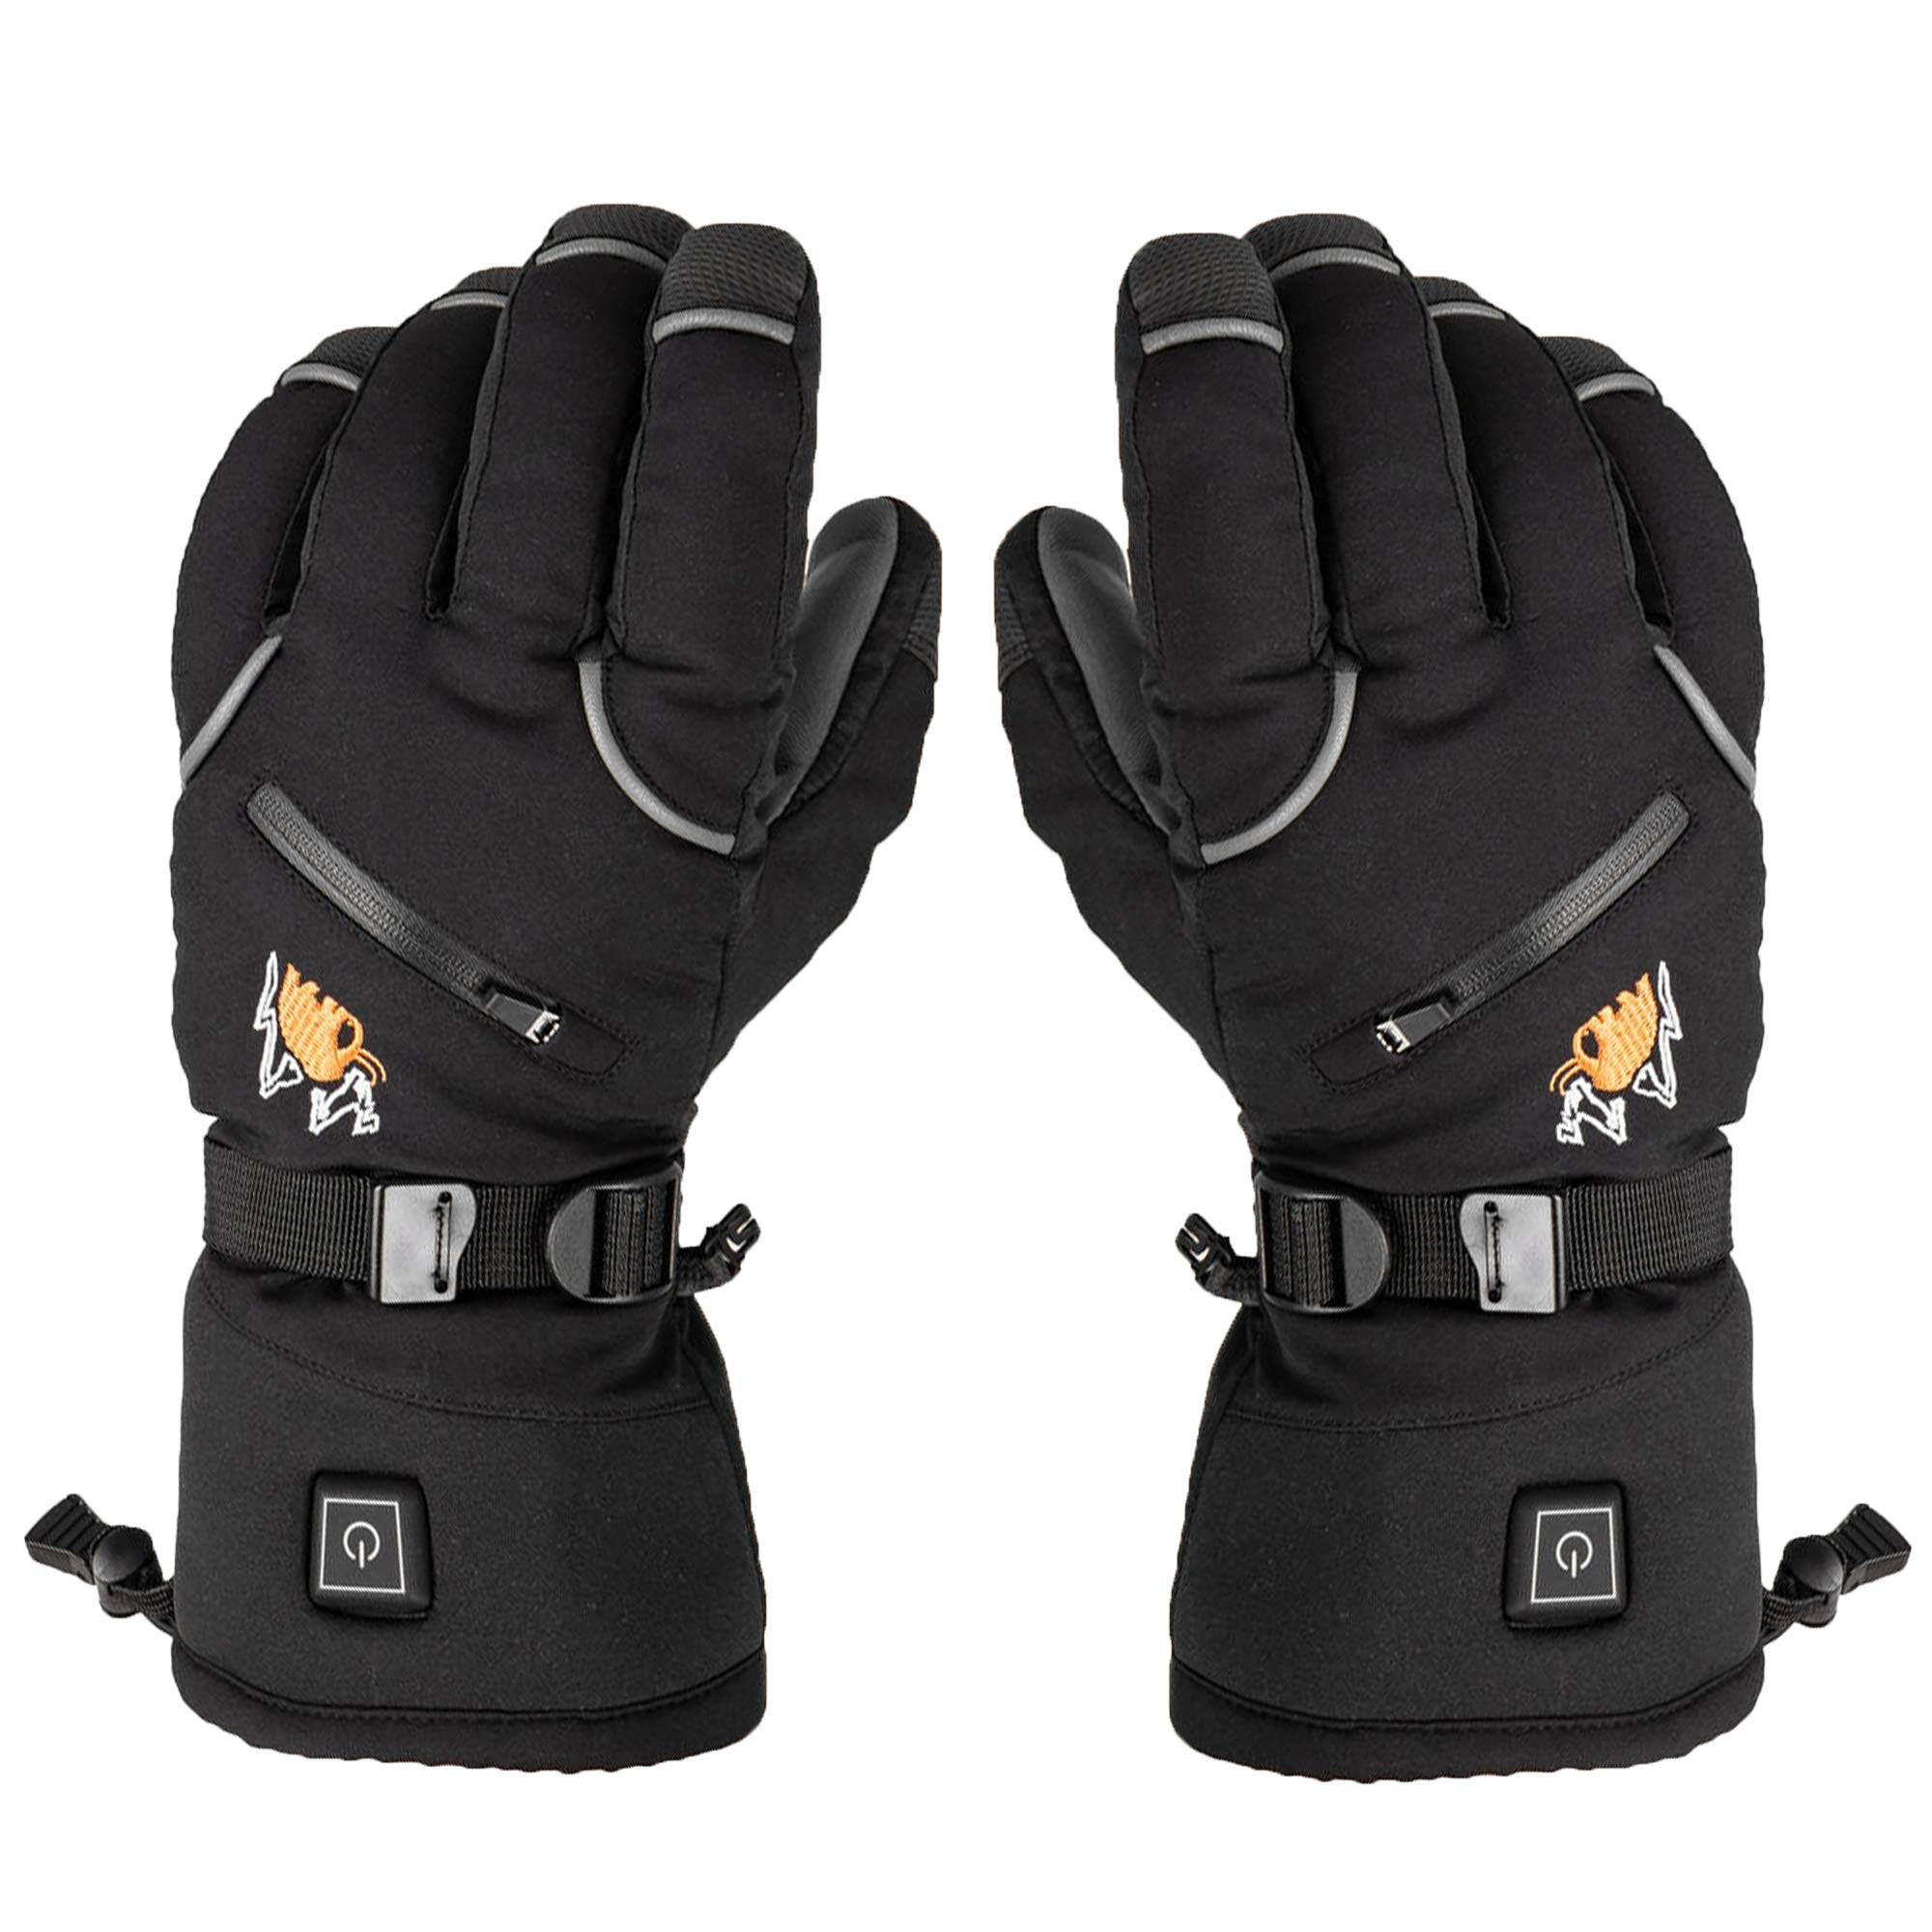 American Mammoth Heated Gloves for Men & Women - Battery Electric Heated Warm Cycling Motorcycle| Works Up to 6 Hours (Medium Mens Glove) by American Mammoth